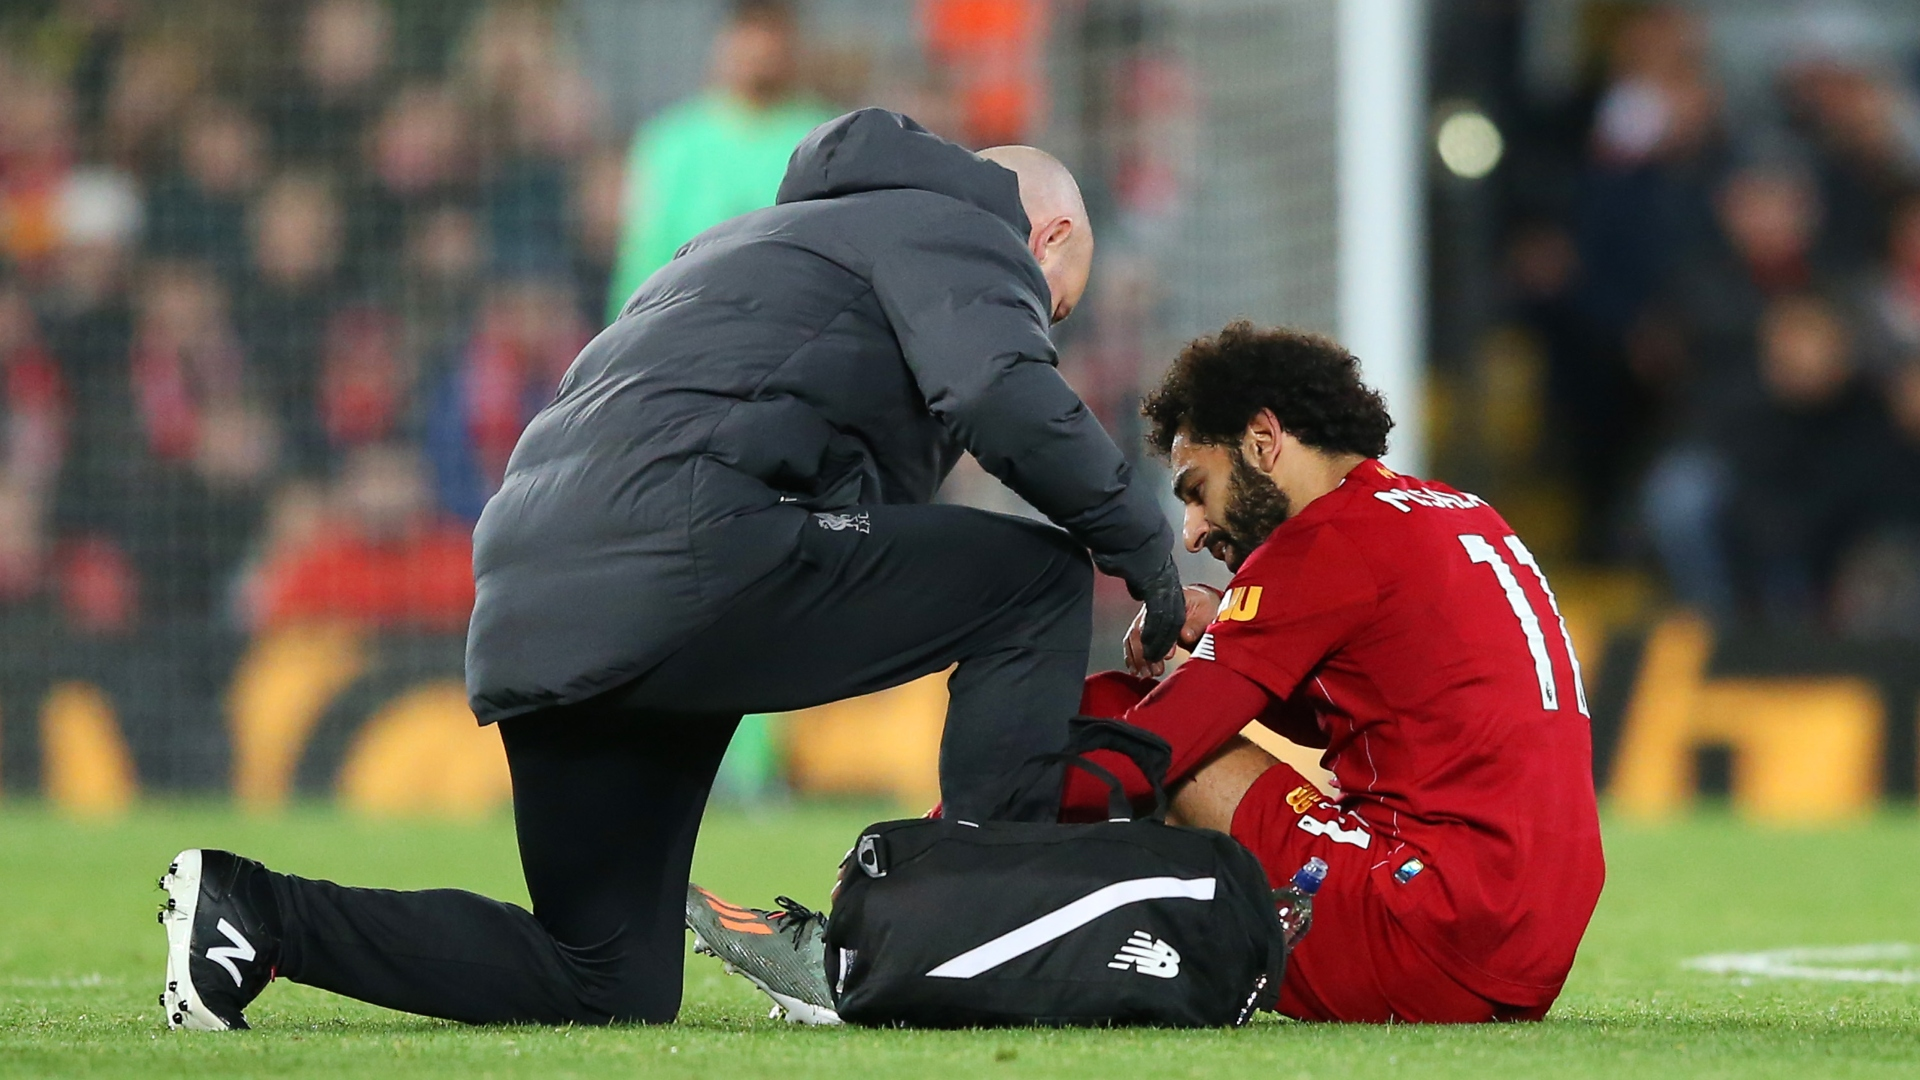 Liverpool star Salah's return date from injury not clear